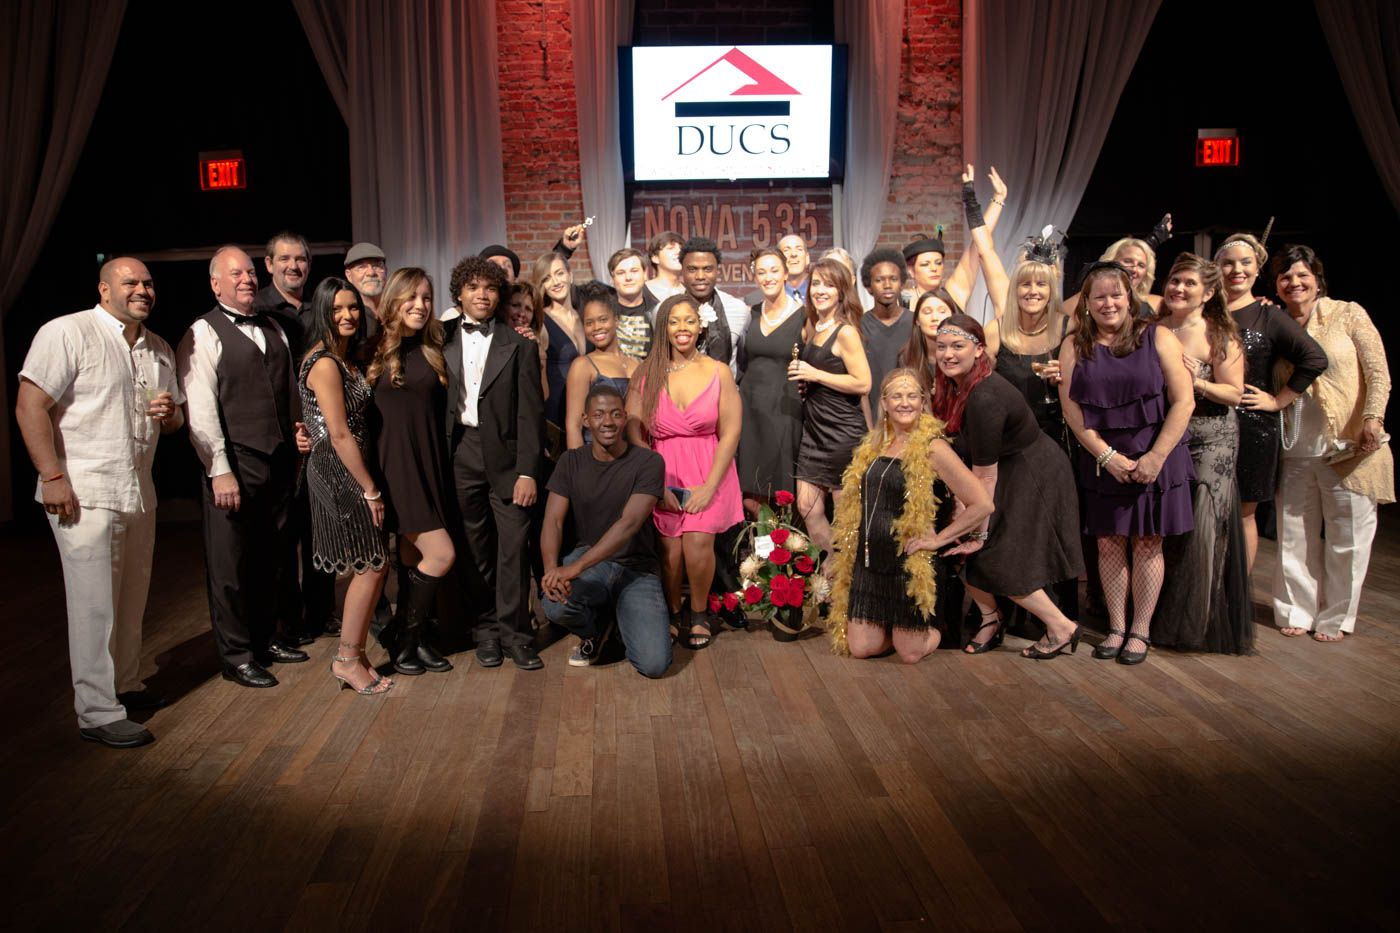 2016 09-17 Arts Conservatory For Teens Fundraiser at NOVA 535